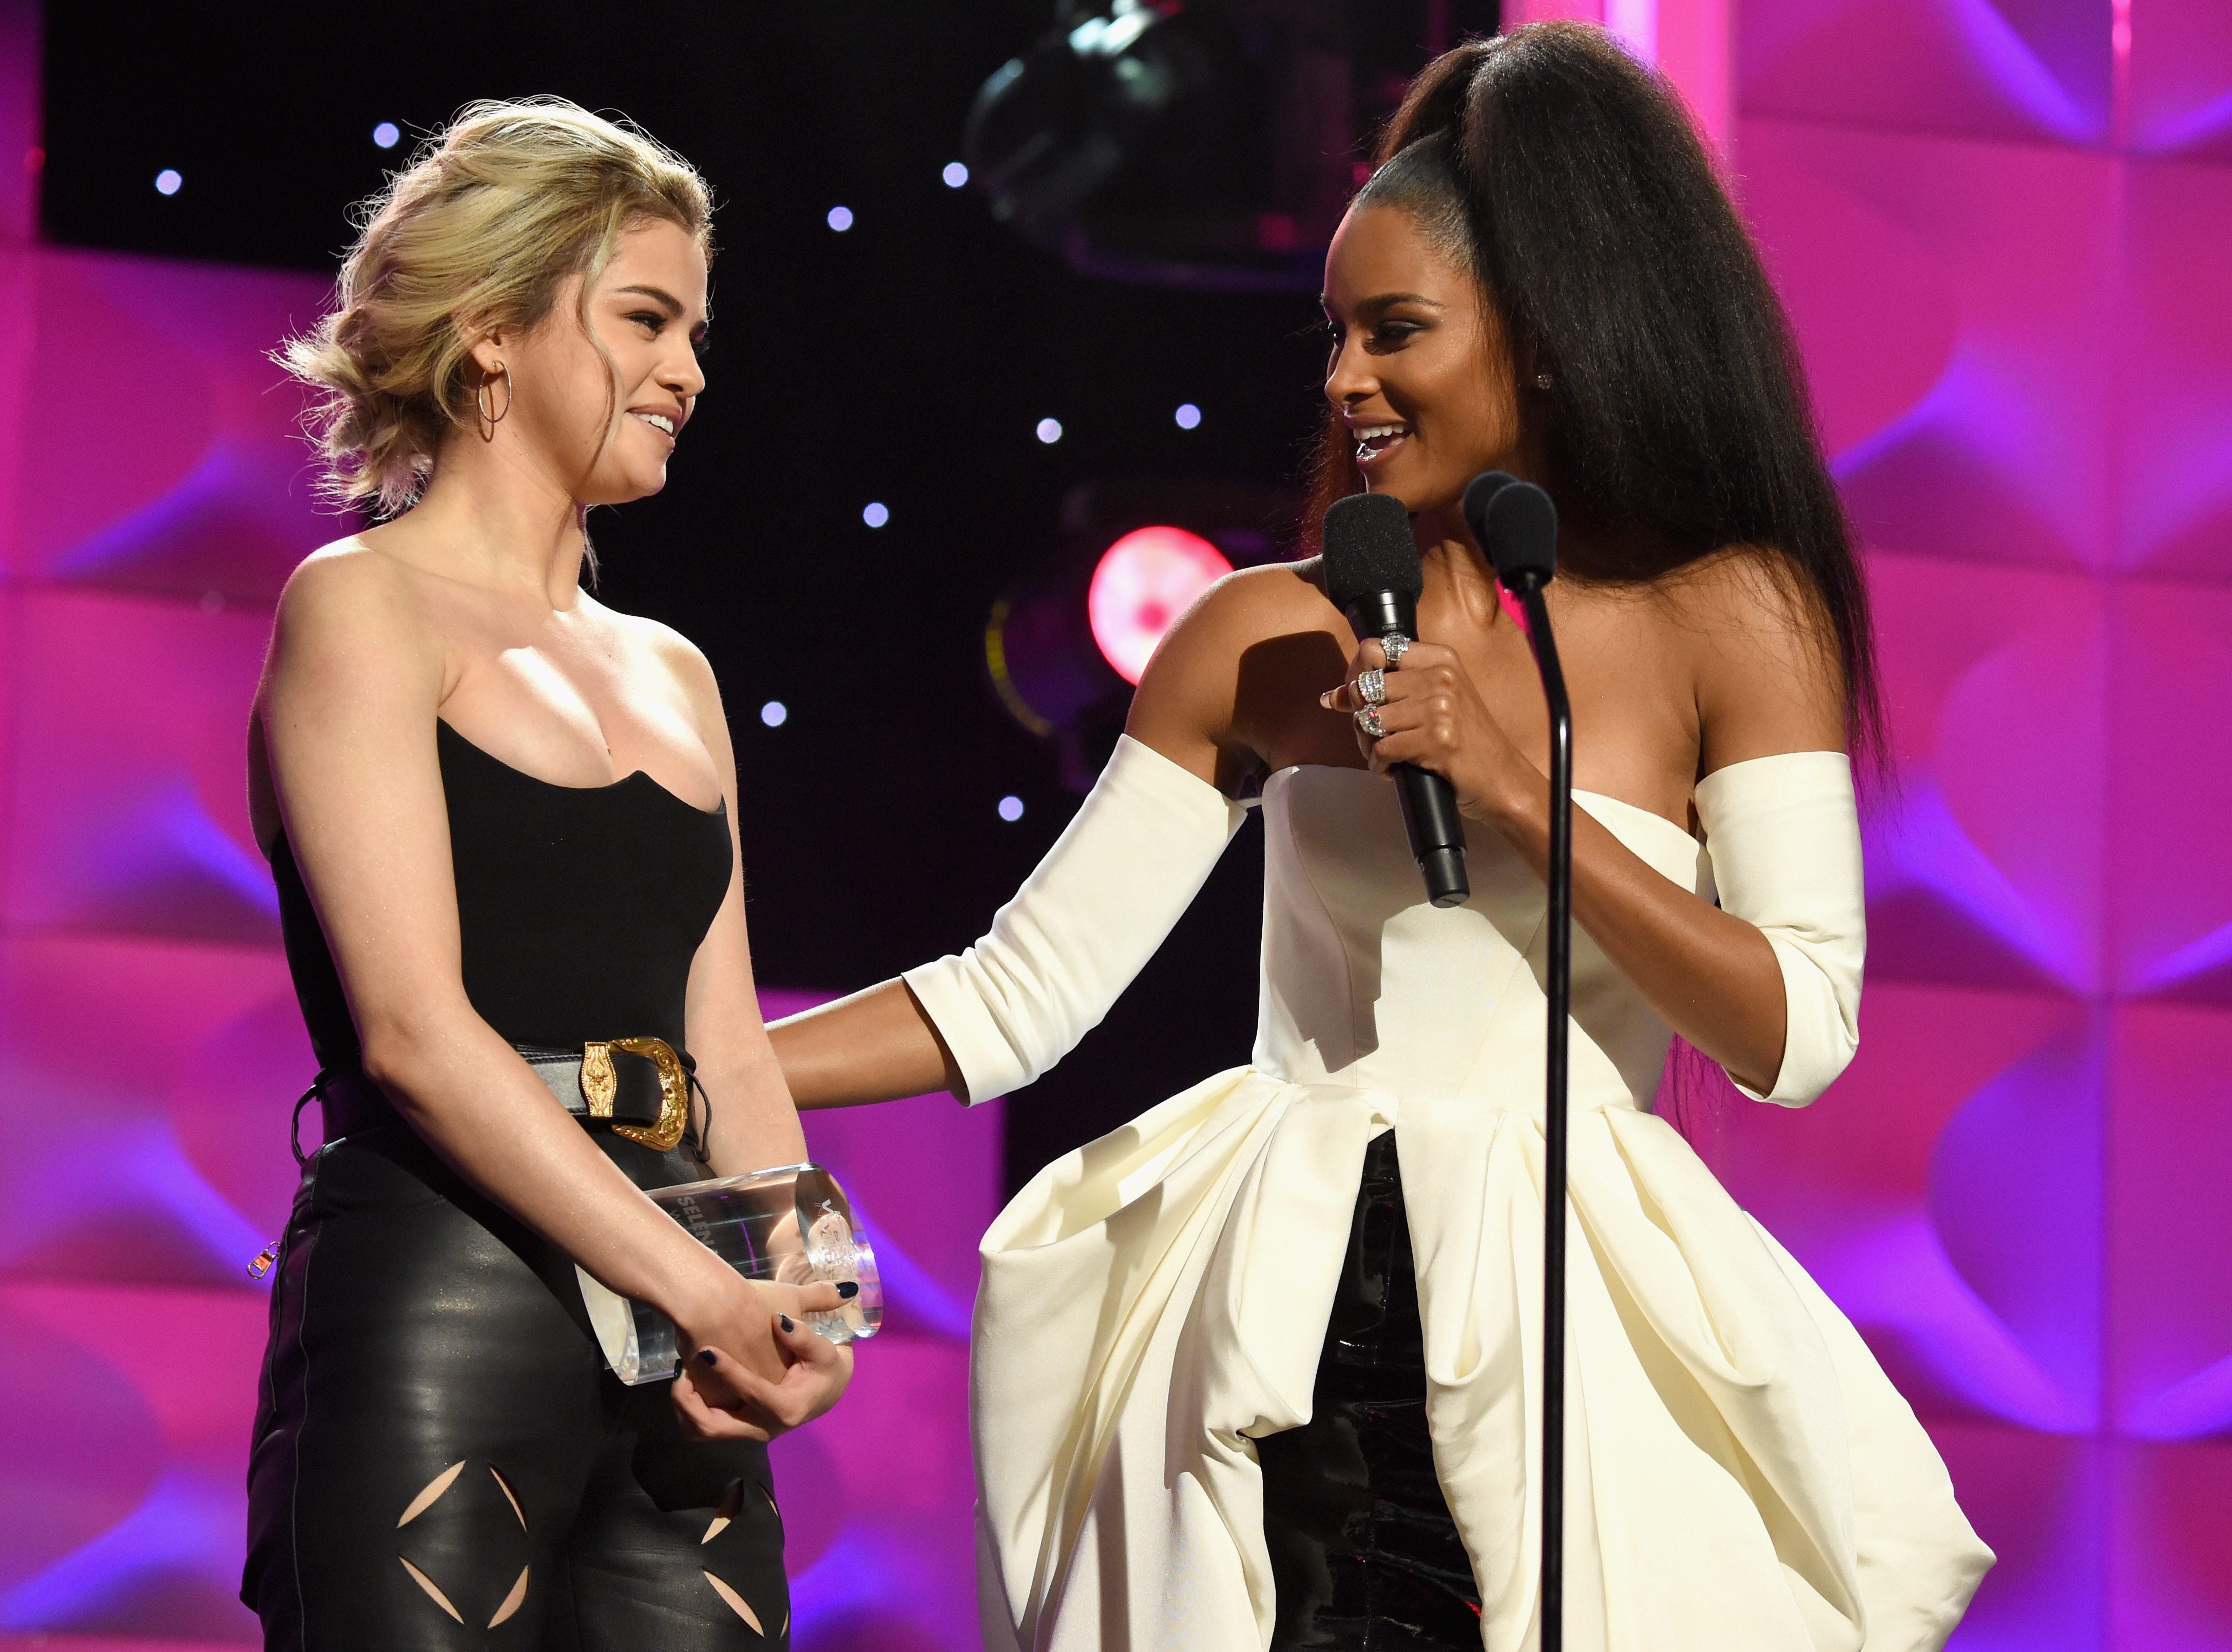 HOLLYWOOD, CA - NOVEMBER 30:  Honoree Selena Gomez (L) Accepts the Woman of the Year Award with host Ciara onstage at Billboard Women In Music 2017 at The Ray Dolby Ballroom at Hollywood & Highland Center on November 30, 2017 in Hollywood, California.  (Photo by Michael Kovac/Getty Images for Billboard) ORG XMIT: 775082060 ORIG FILE ID: 883400956